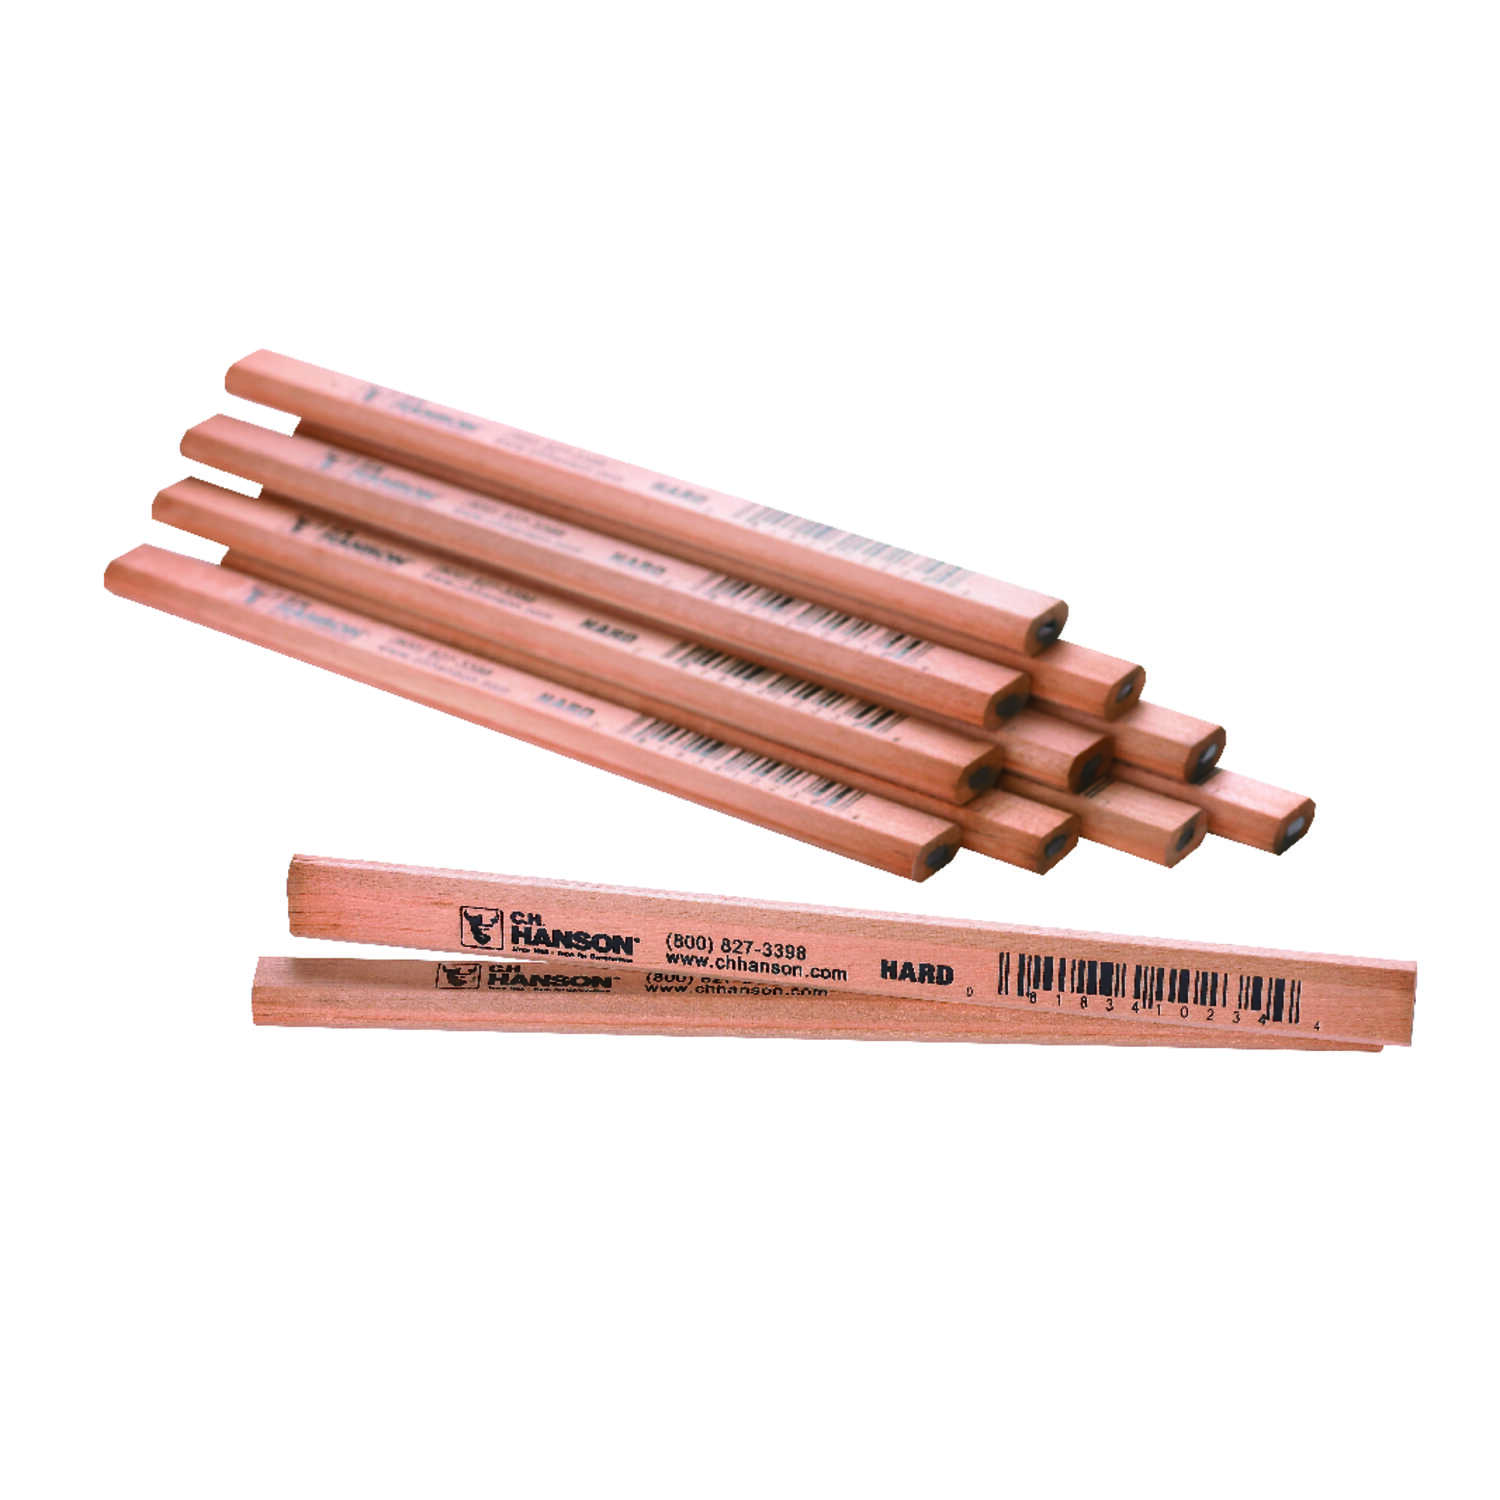 C.H. Hanson  7 in. L x 0.5 in. W Carpenter Pencil  Beige  Wood  12 pc.